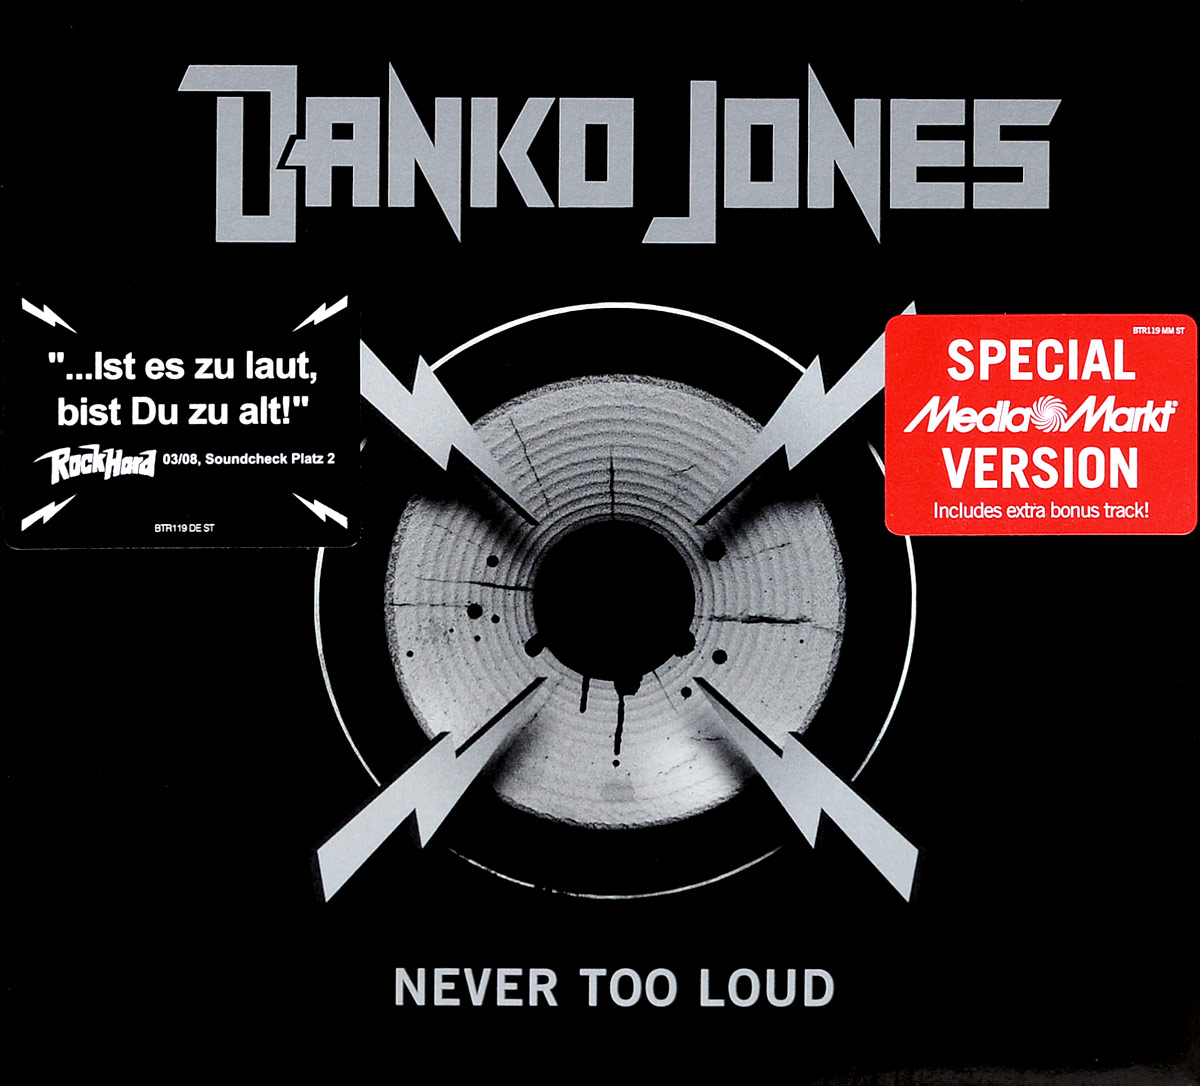 Danko Jones Danko Jones. Never Too Loud. Special Media Markt Version 110db loud security alarm siren horn speaker buzzer black red dc 6 16v